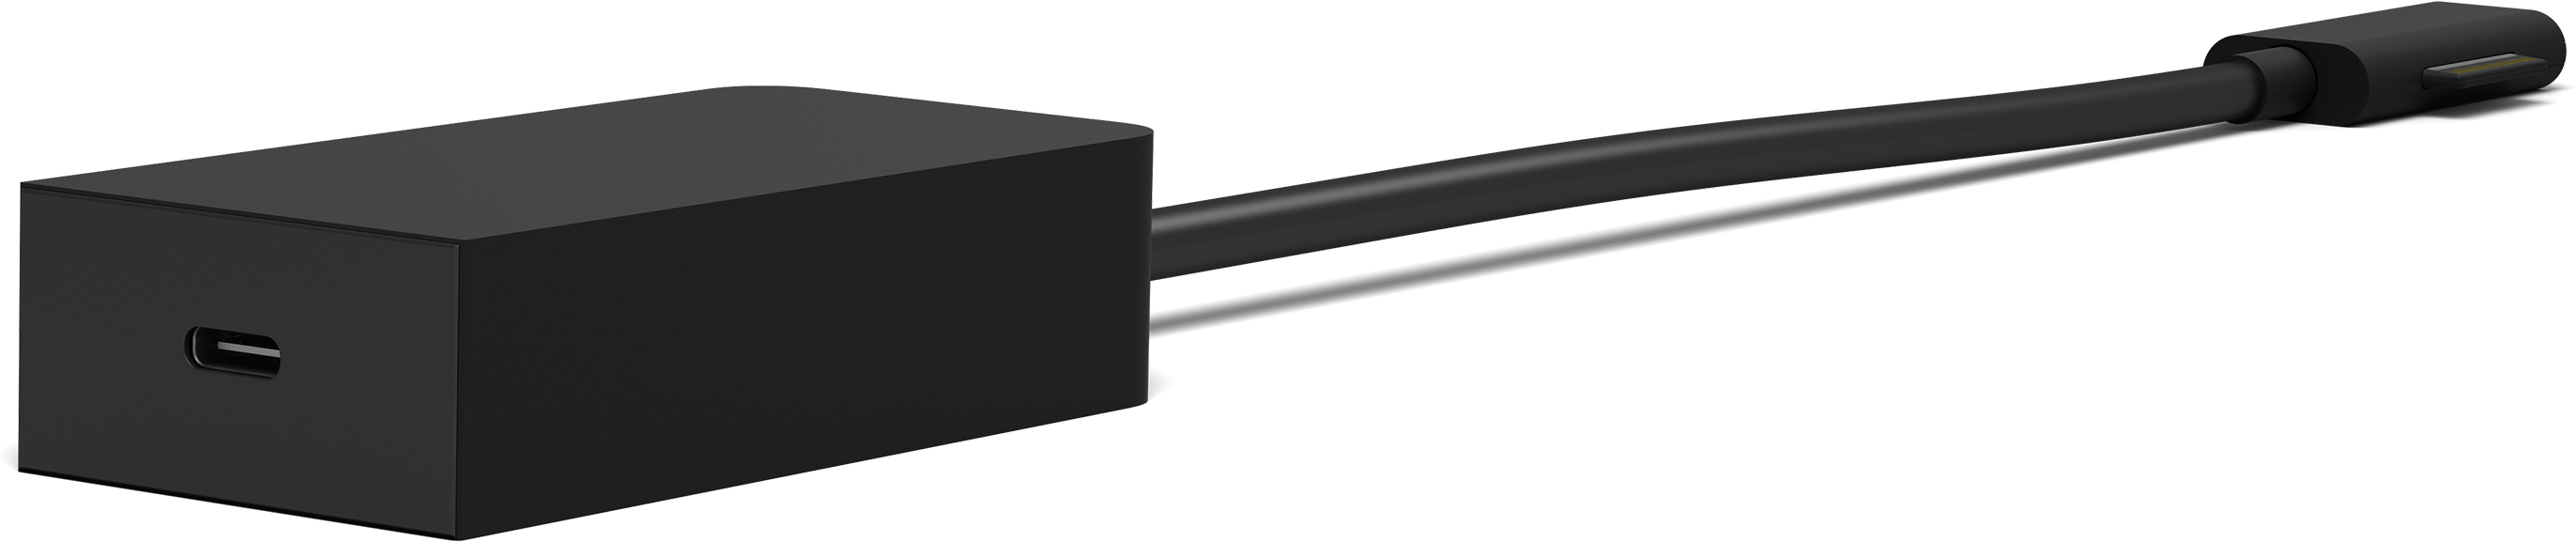 Surface Connect to USB-C Adapter